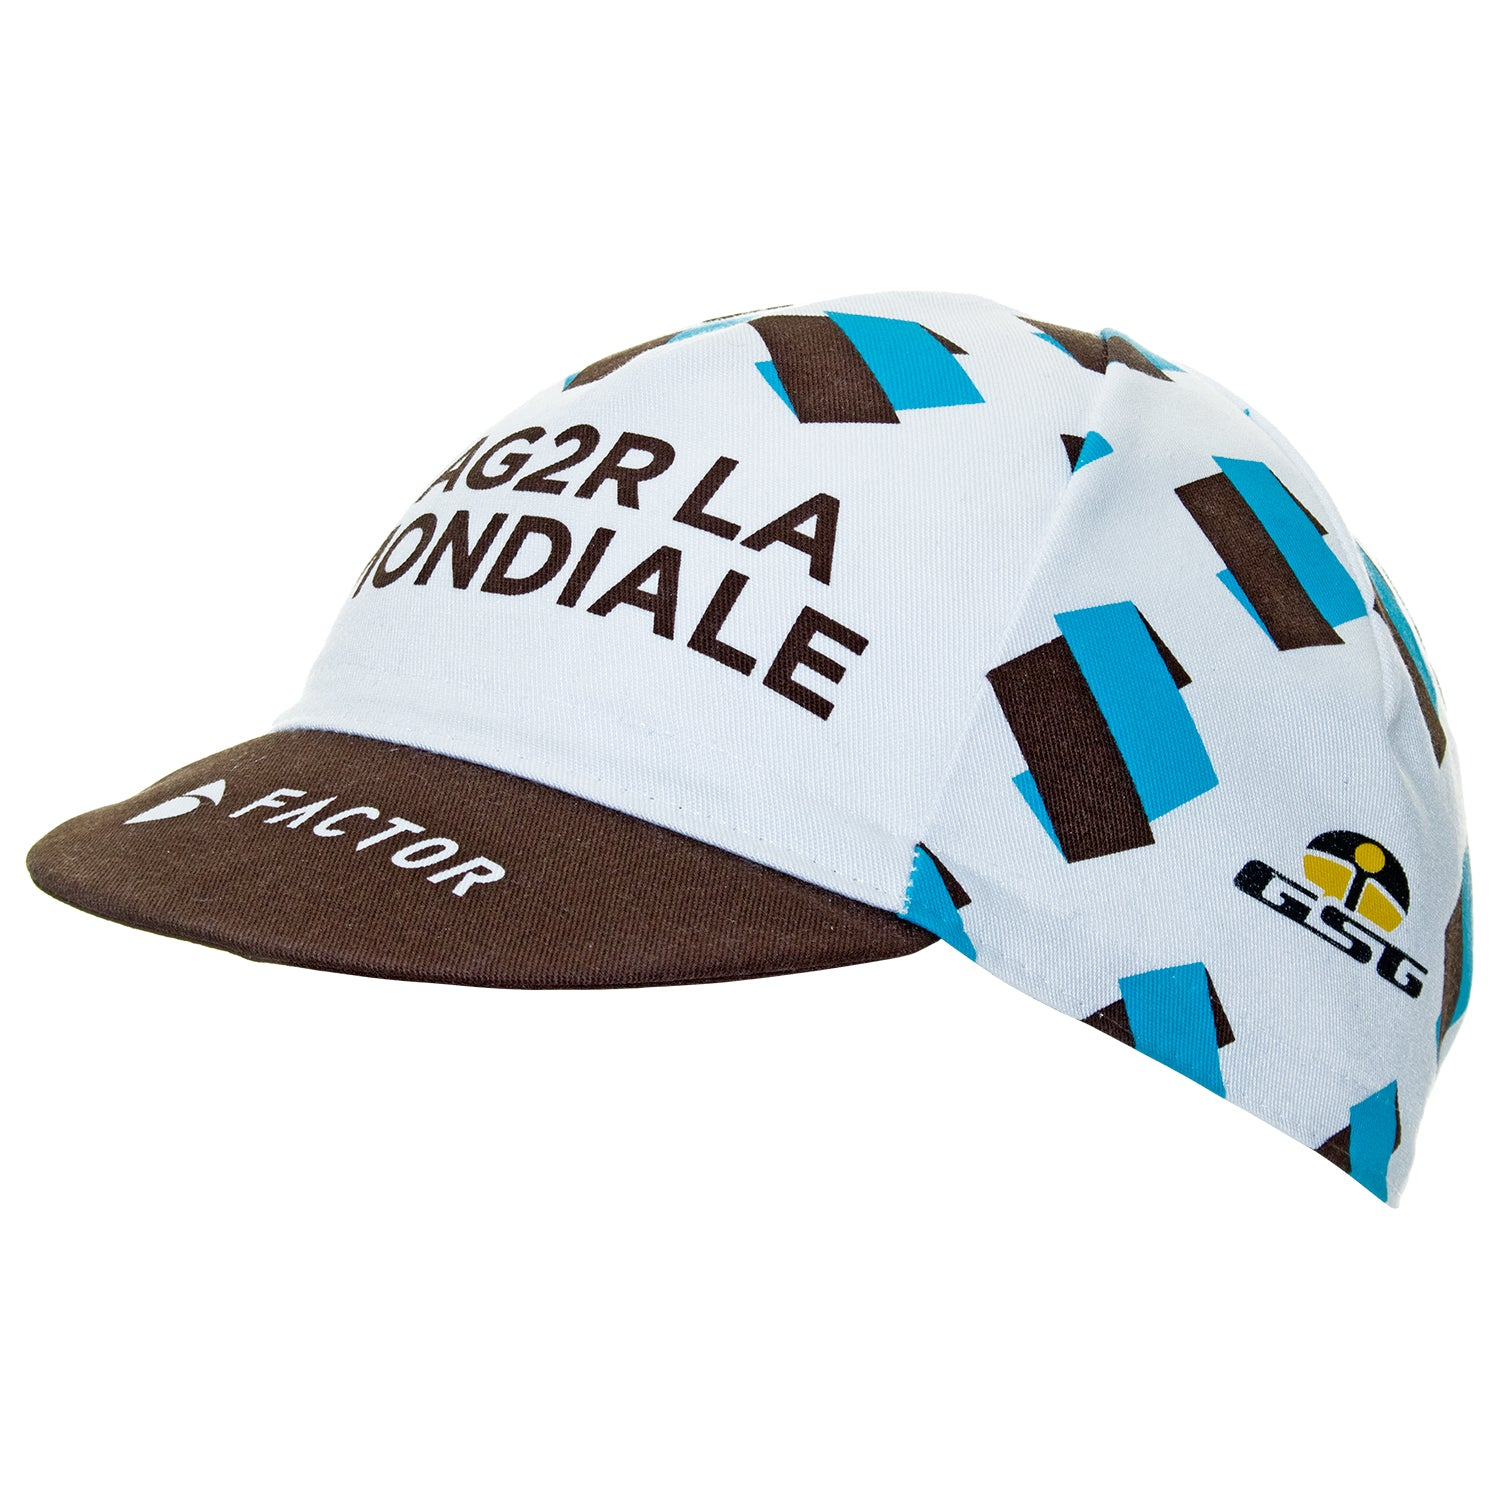 Ag2R La Mondiale / Factor / Giessegi 2017 Cotton Cycling Cap